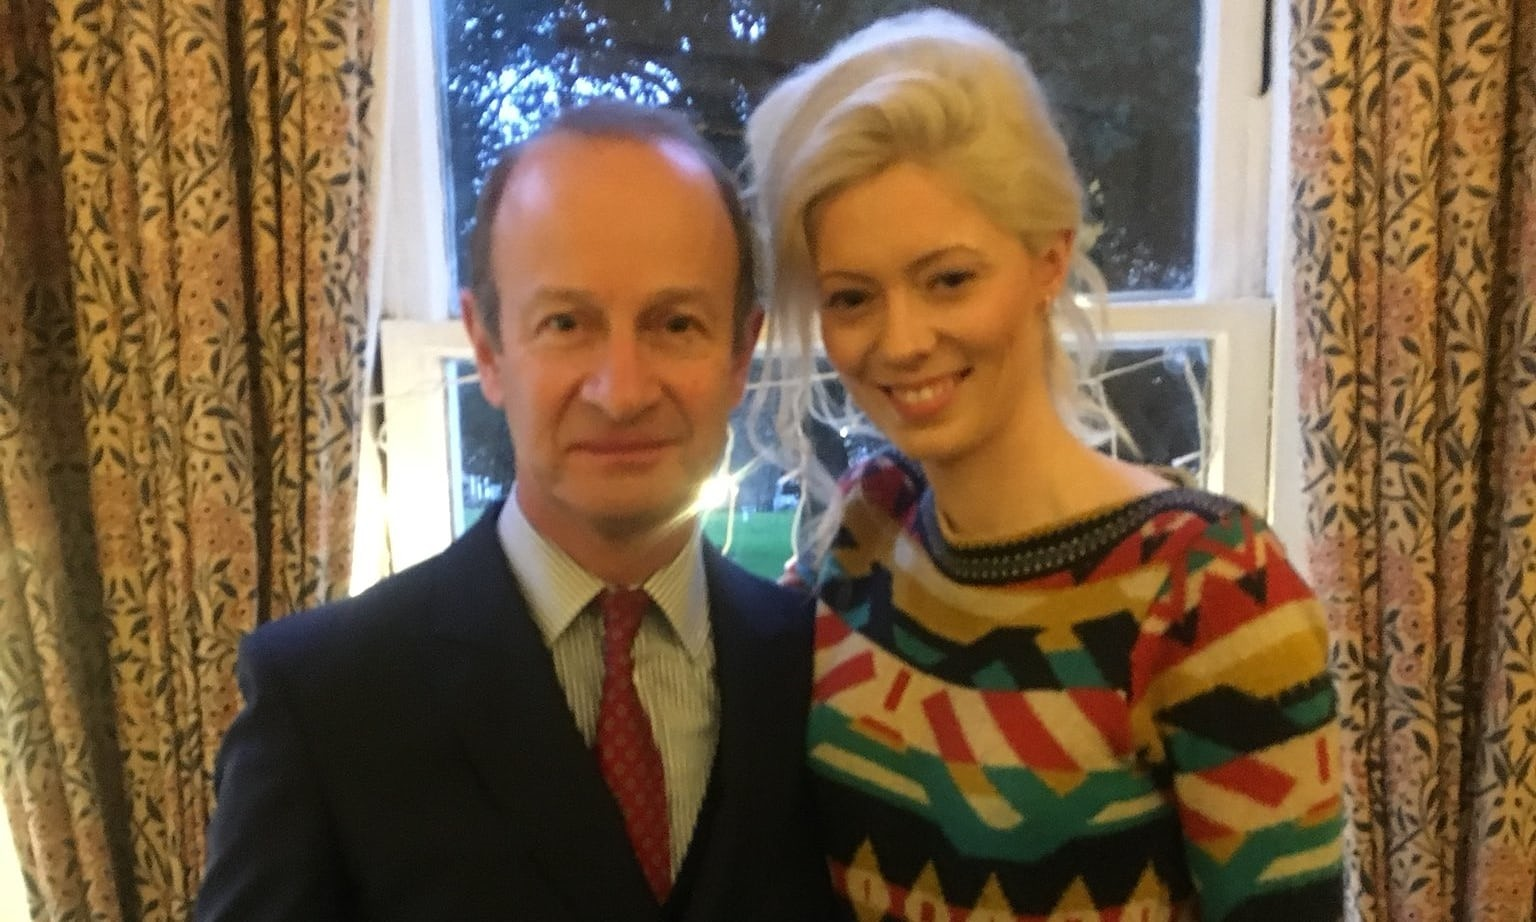 UKIP leader Henry Bolton and his 25-year-old girlfriend Jo Marney. (Source: Twitter)